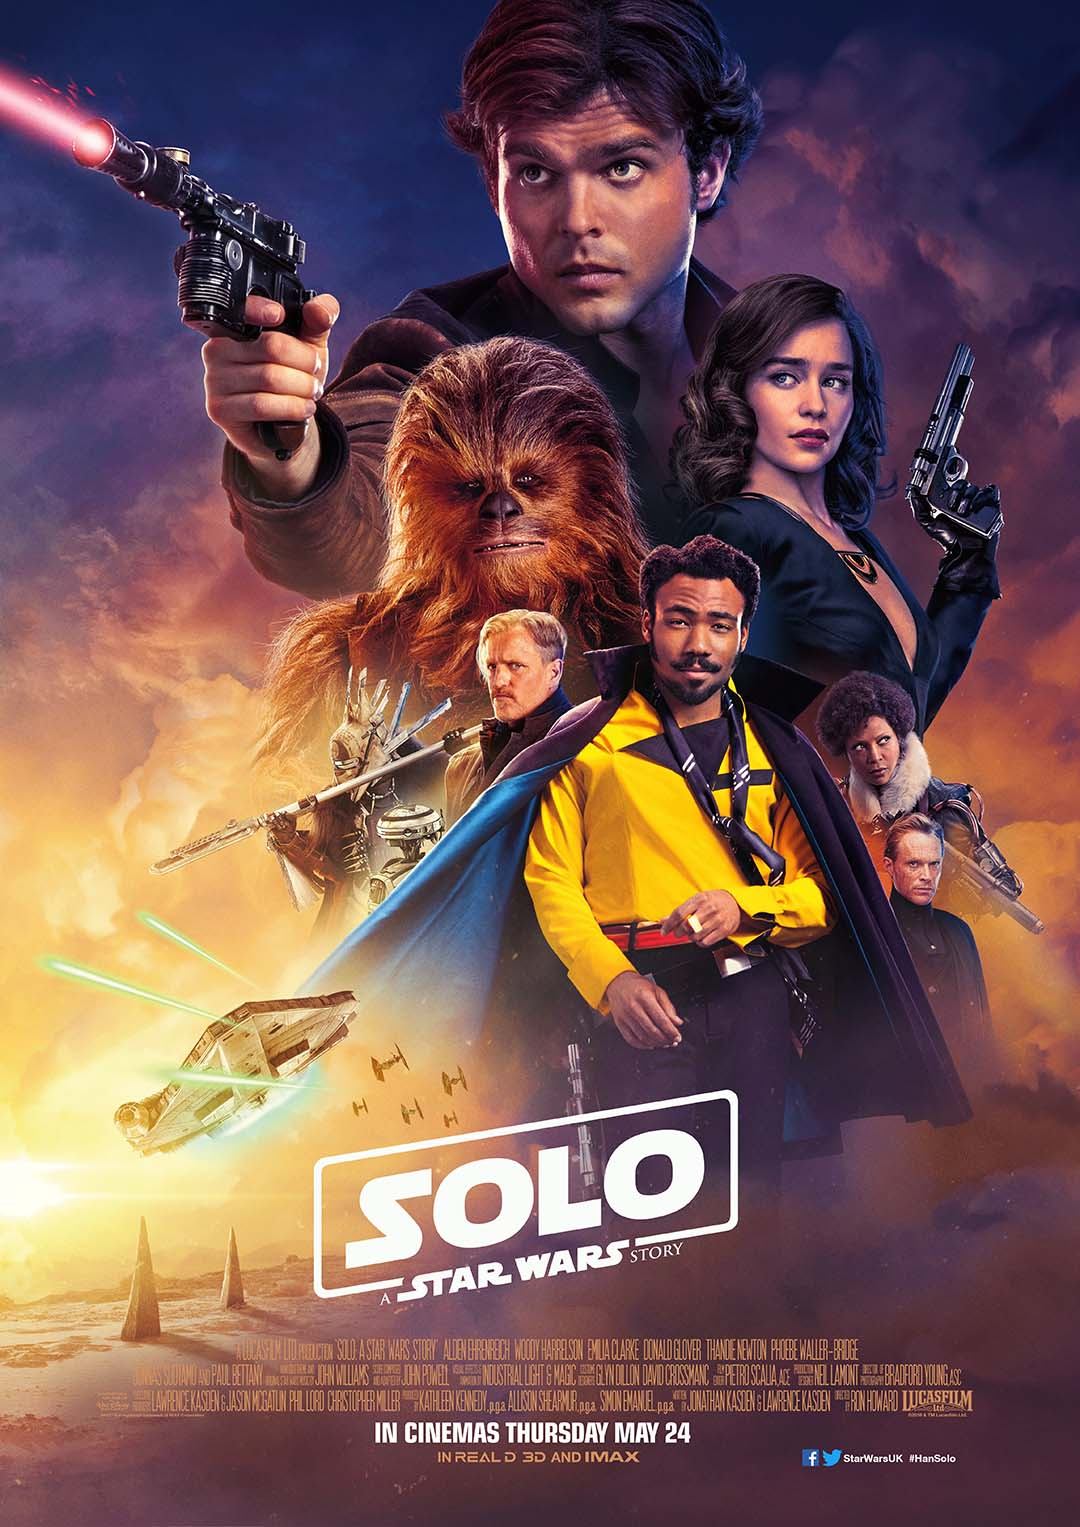 Solo A Star Wars Story UK Theatrical Poster Ron Howard and company recapture some of the old magic that made the Star Wars saga legendary in this exciting blockbuster Solo: A Star Wars Story.